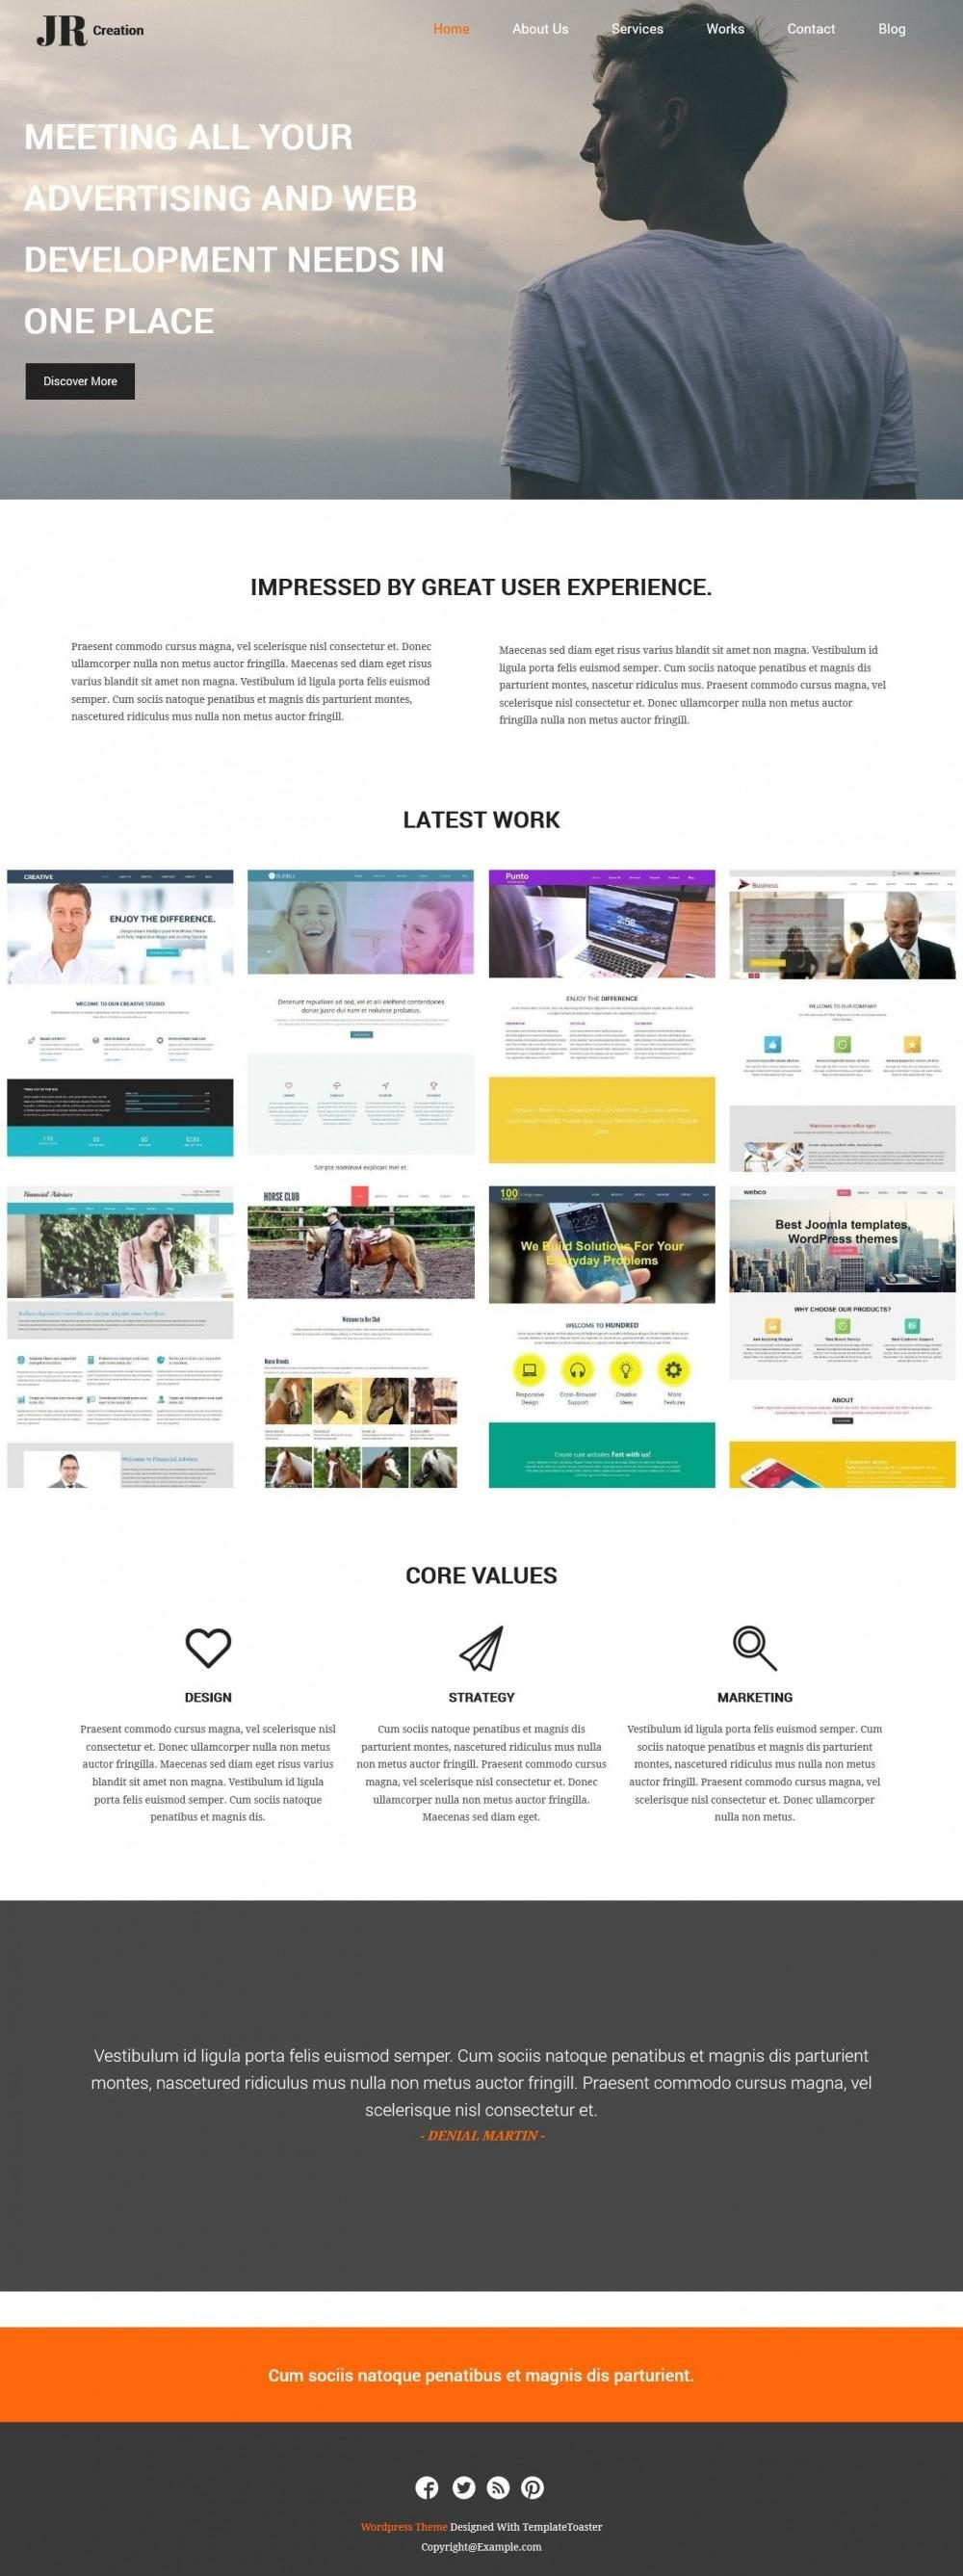 jr creation web designer portfolio blogger template